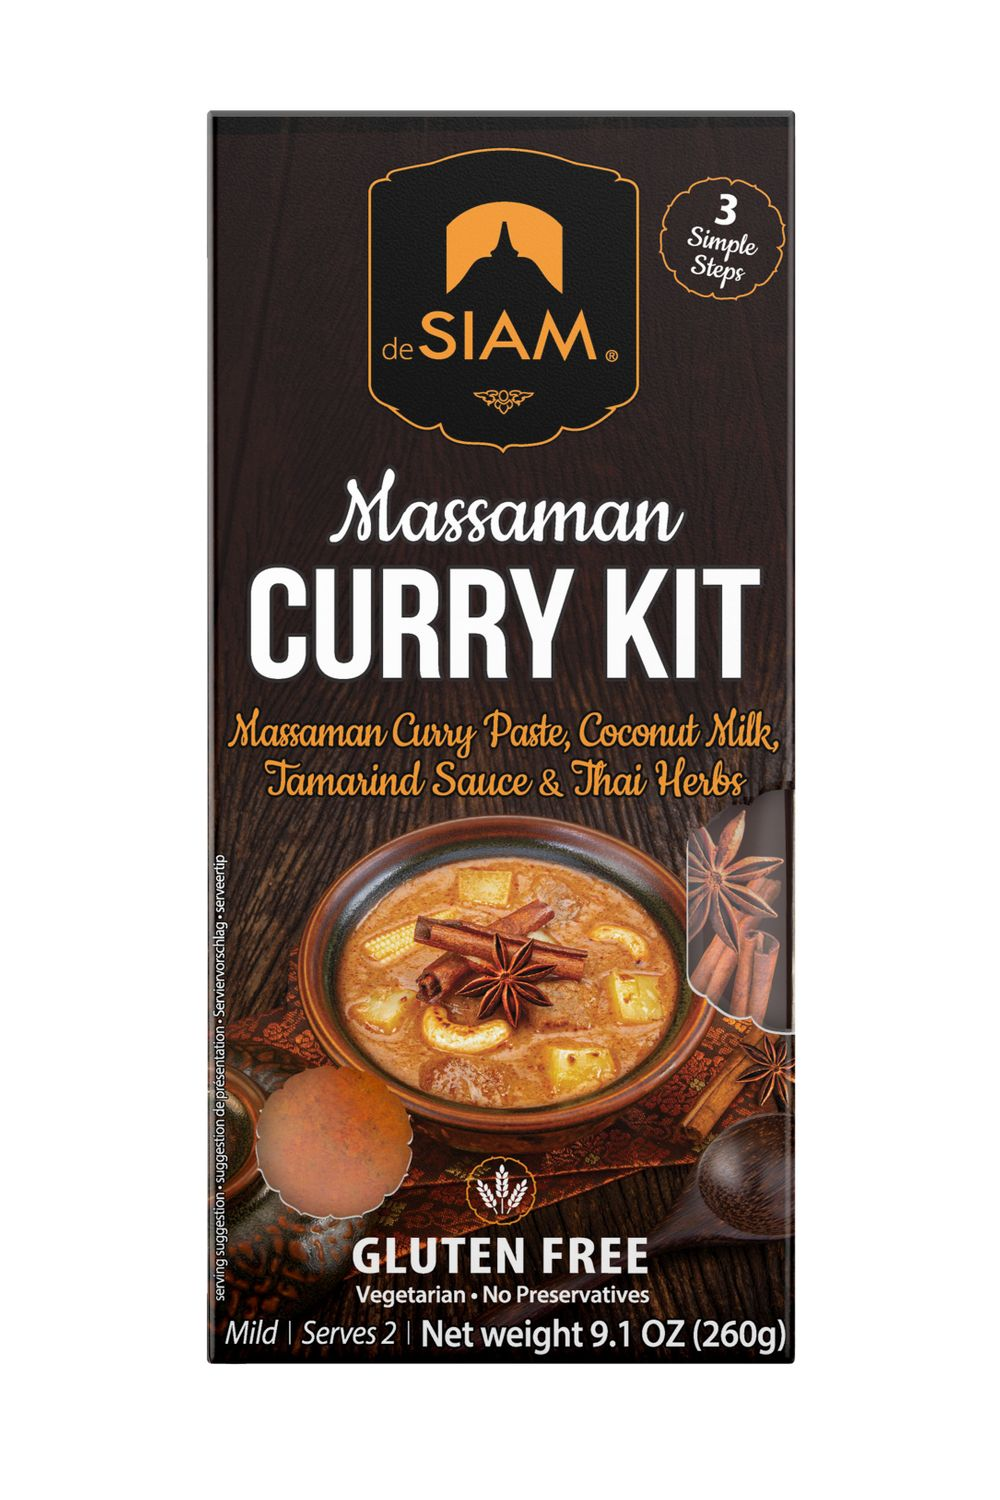 Massaman Curry Meal Kit